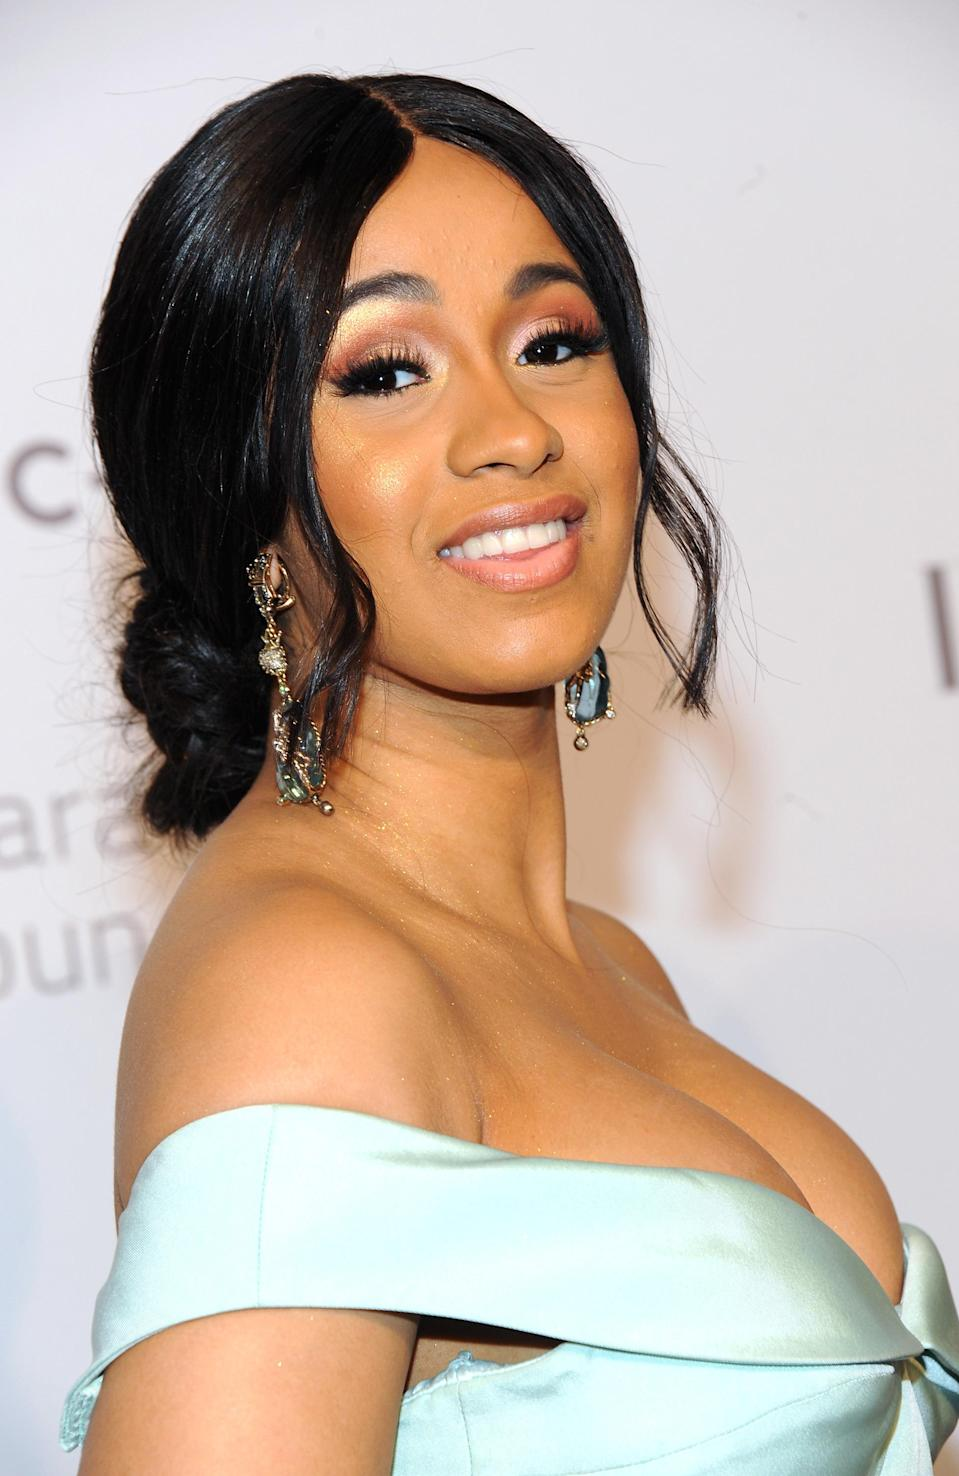 "<p>Calling <a href=""https://www.yahoo.com/lifestyle/tagged/cardi-b"" data-ylk=""slk:Cardi B"" class=""link rapid-noclick-resp"">Cardi B</a> colorful is an understatement. While the Dominican-Trinidadian rapper can quickly <a href=""https://www.yahoo.com/lifestyle/cardi-b-apos-17-best-204257350.html"" data-ylk=""slk:change her look;outcm:mb_qualified_link;_E:mb_qualified_link;ct:story;"" class=""link rapid-noclick-resp yahoo-link"">change her look</a> with a vibrant wig and matching ensemble, she's best known for keeping her fingertips in top shape. Decking out her <a href=""https://www.yahoo.com/lifestyle/cardi-b-nailed-new-mom-mani-heres-mothers-know-154221948.html"" data-ylk=""slk:lengthy tips;outcm:mb_qualified_link;_E:mb_qualified_link;ct:story;"" class=""link rapid-noclick-resp yahoo-link"">lengthy tips</a> in intricate designs and crystal embellishments, she's brought <a href=""https://www.yahoo.com/lifestyle/tagged/nail-art"" data-ylk=""slk:nail art"" class=""link rapid-noclick-resp"">nail art</a> back to the forefront, and it has since maintained center stage. (Photo: Getty Images) </p>"